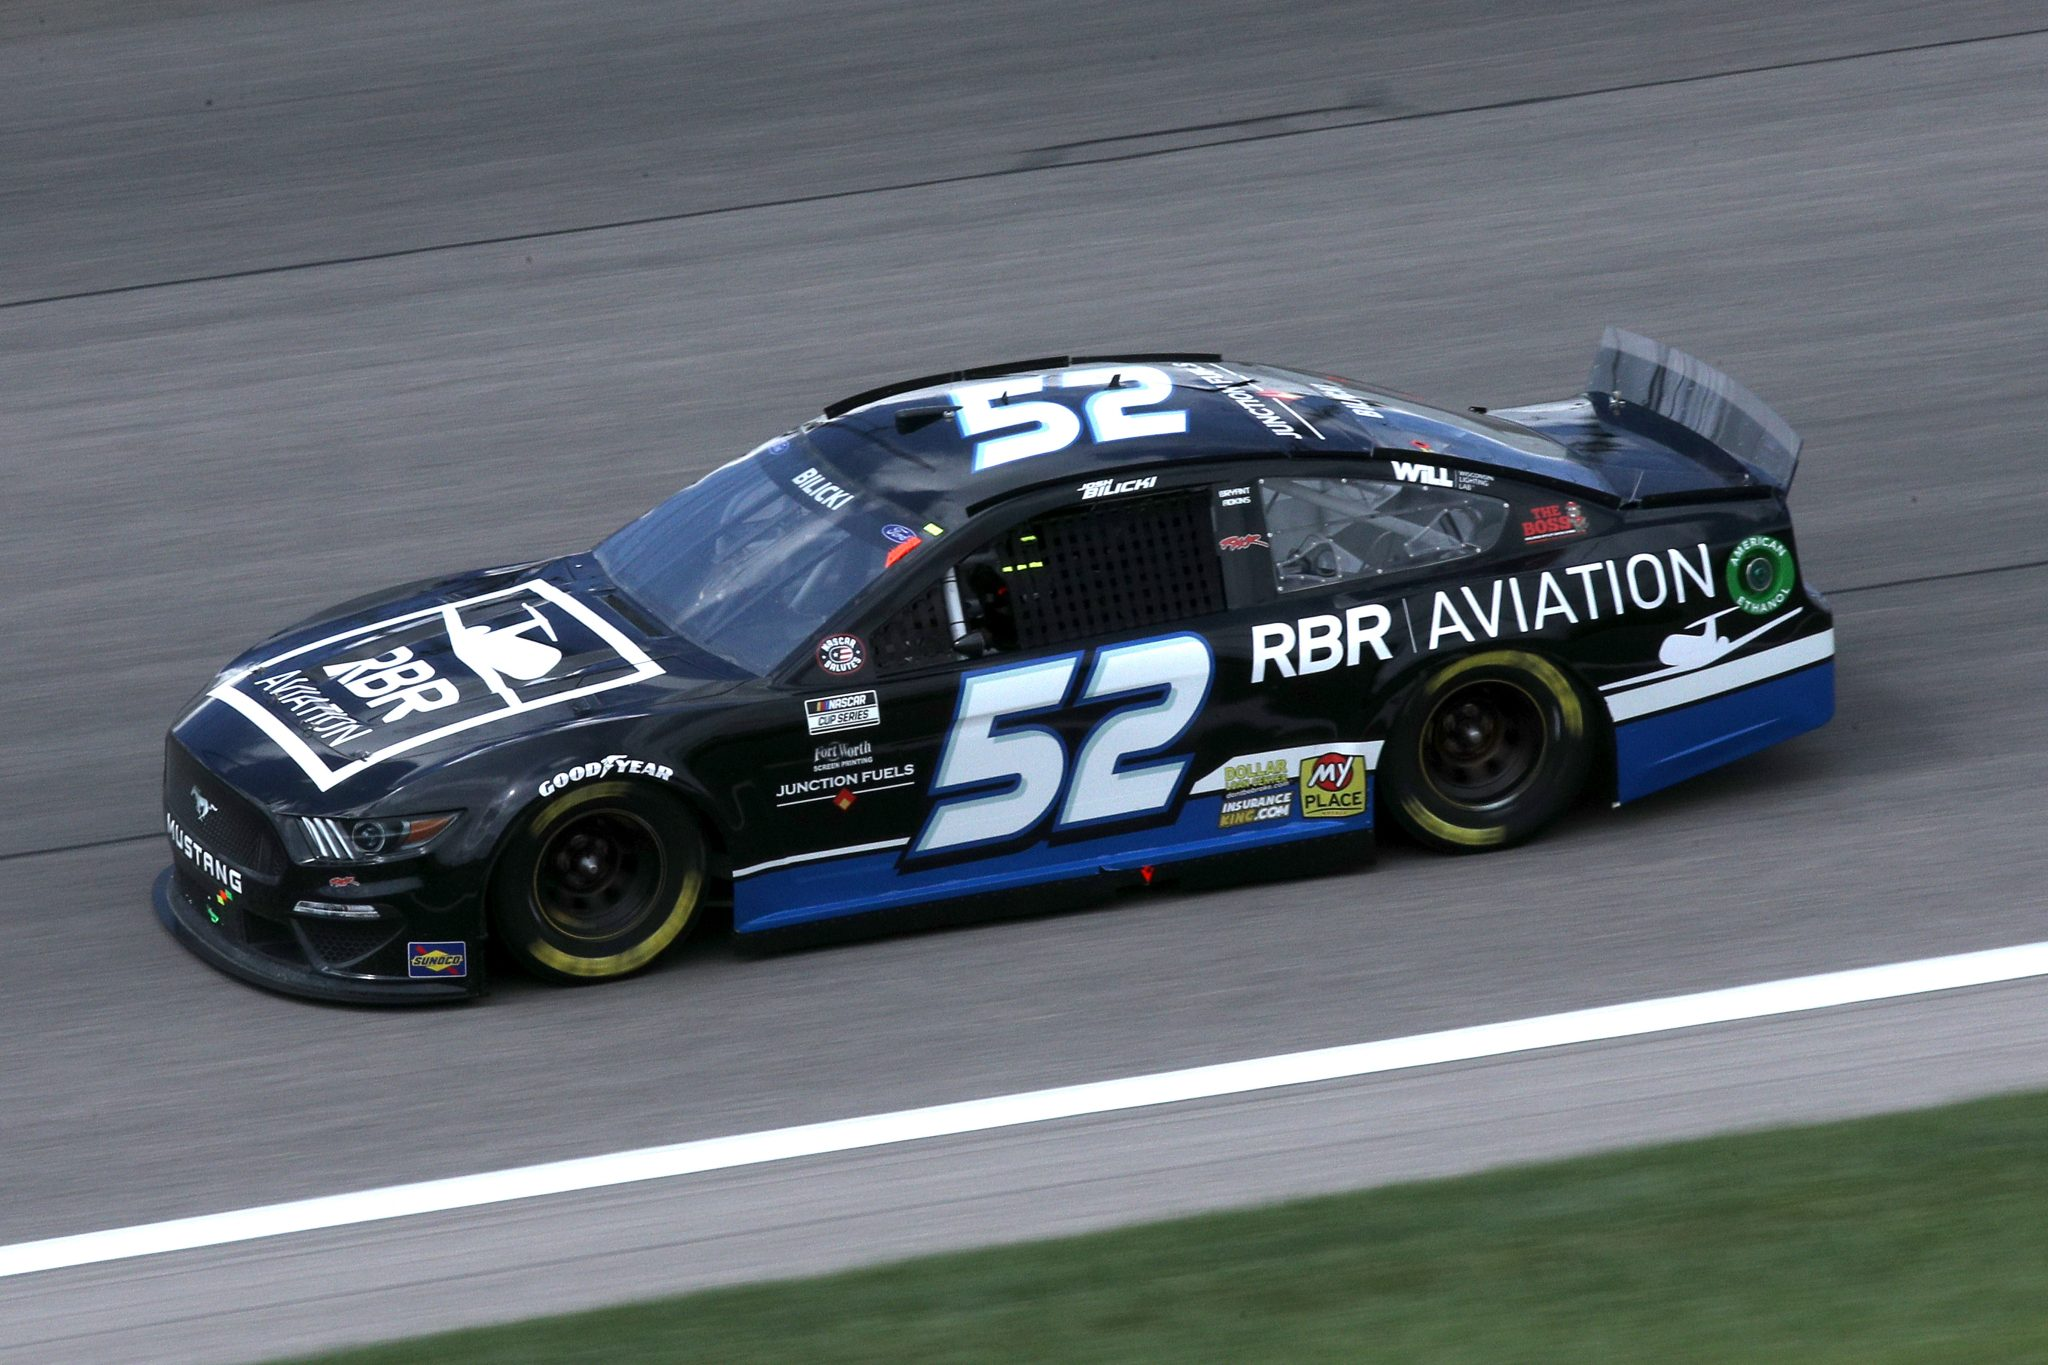 KANSAS CITY, KANSAS - MAY 02: Josh Bilicki, driver of the #52 RBR Aviation Ford, drives during the NASCAR Cup Series Buschy McBusch Race 400 at Kansas Speedway on May 02, 2021 in Kansas City, Kansas. (Photo by Sean Gardner/Getty Images) | Getty Images